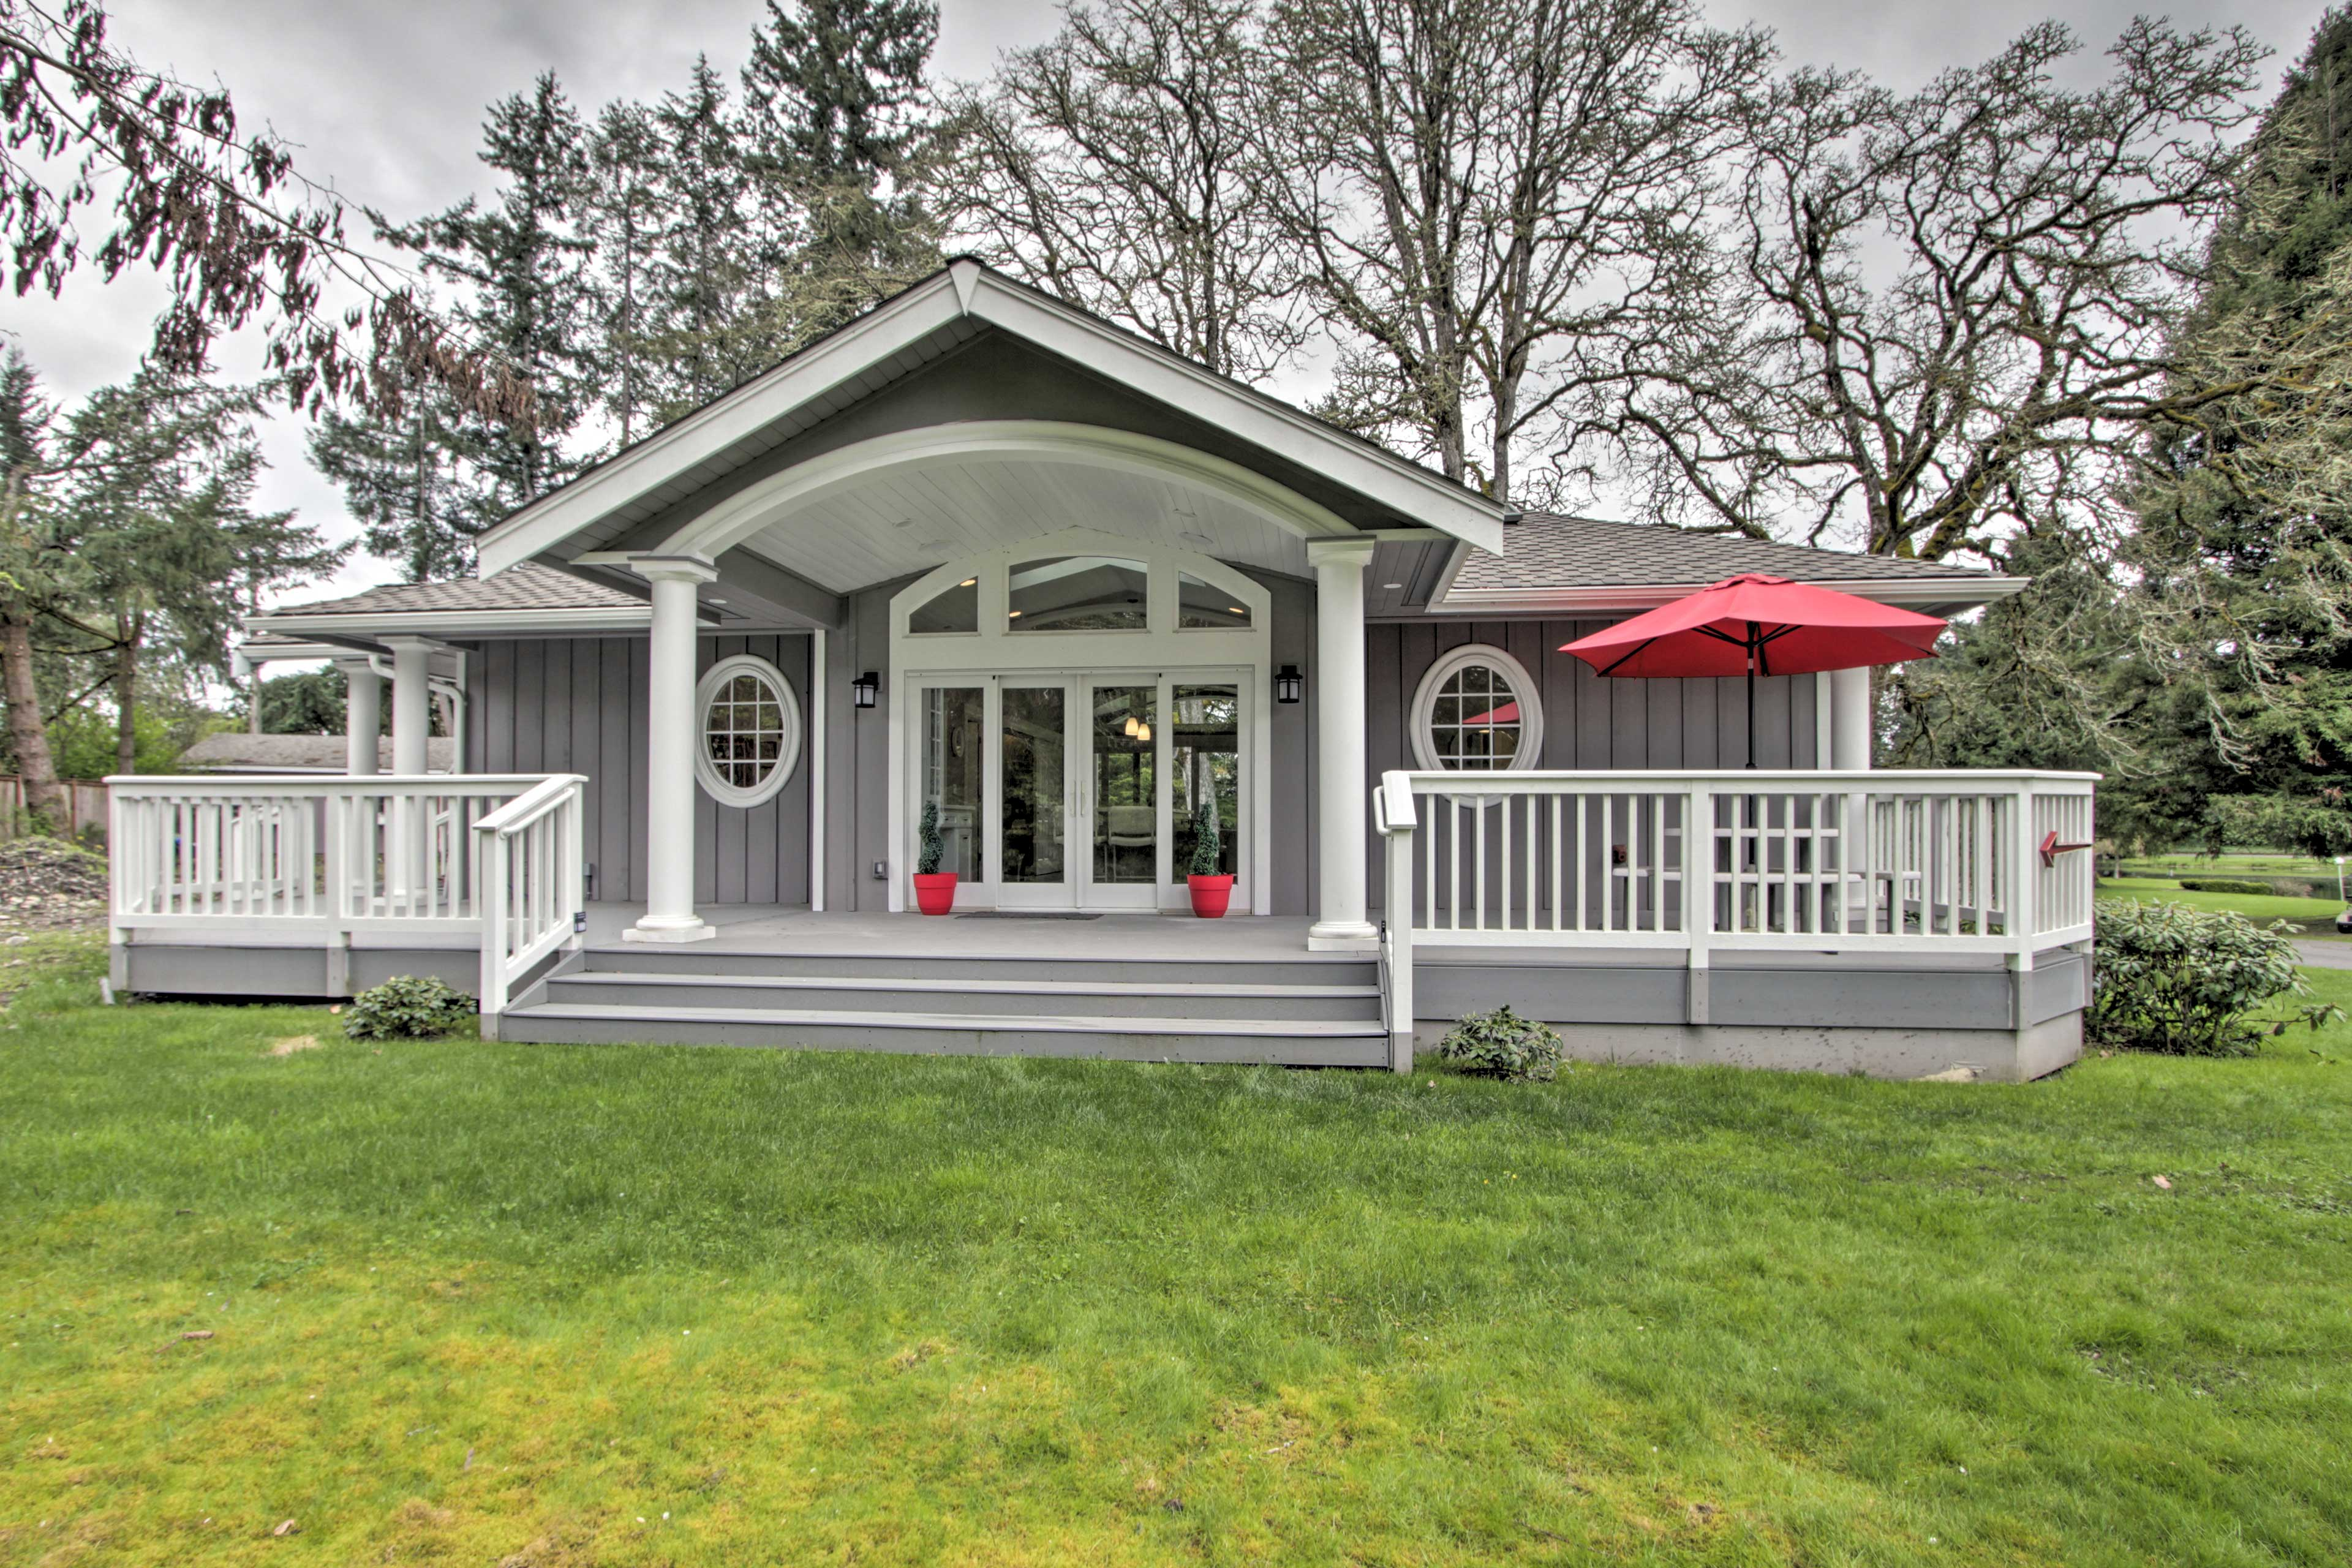 Book your Tacoma getaway to this gorgeous 2-bedroom, 2-bath vacation rental!